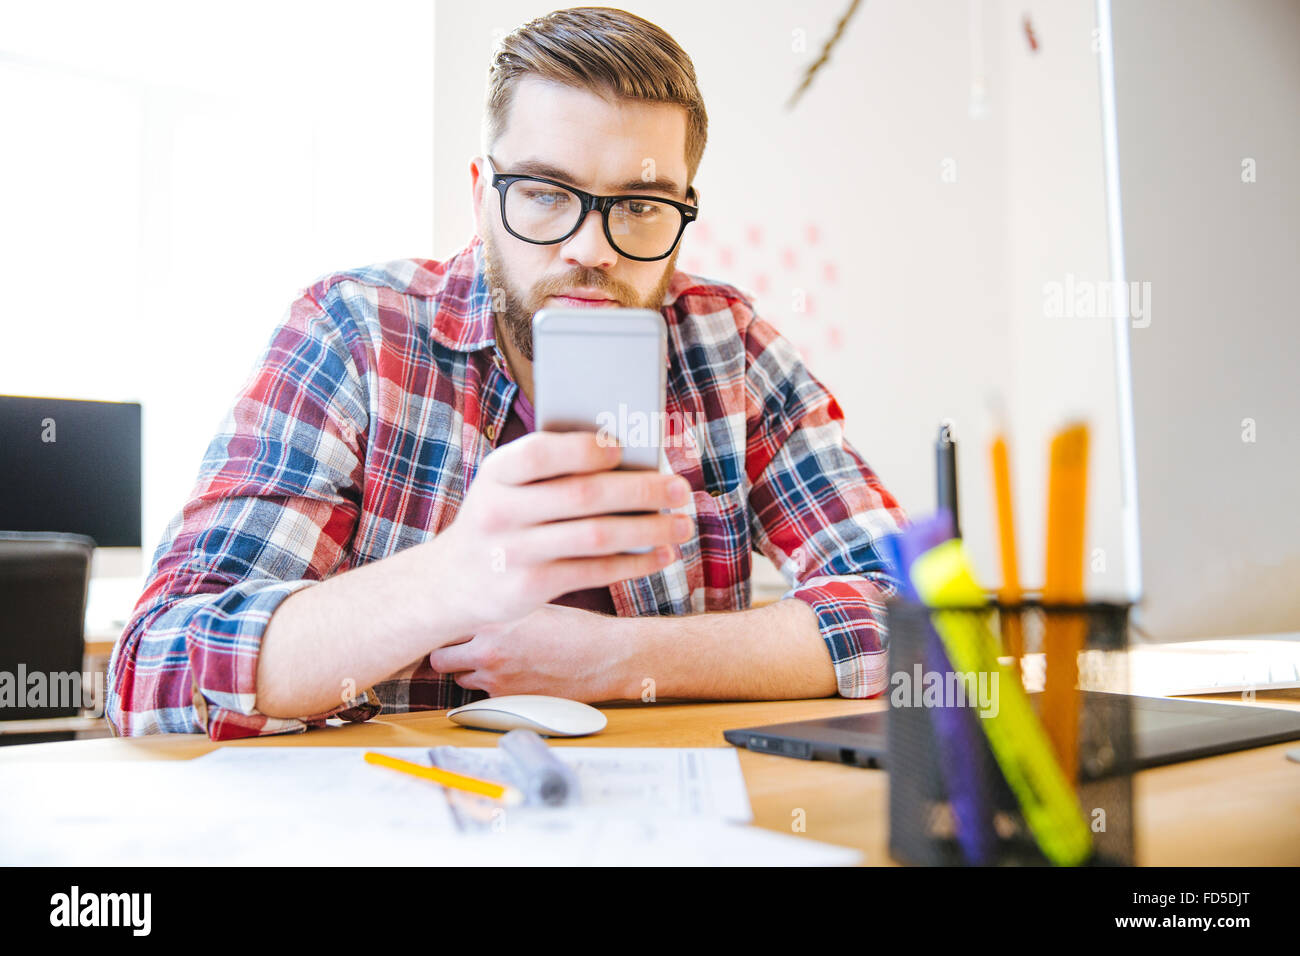 Handsome concentrated young man with beard in checkered shirt sitting at the table and using cell phone - Stock Image